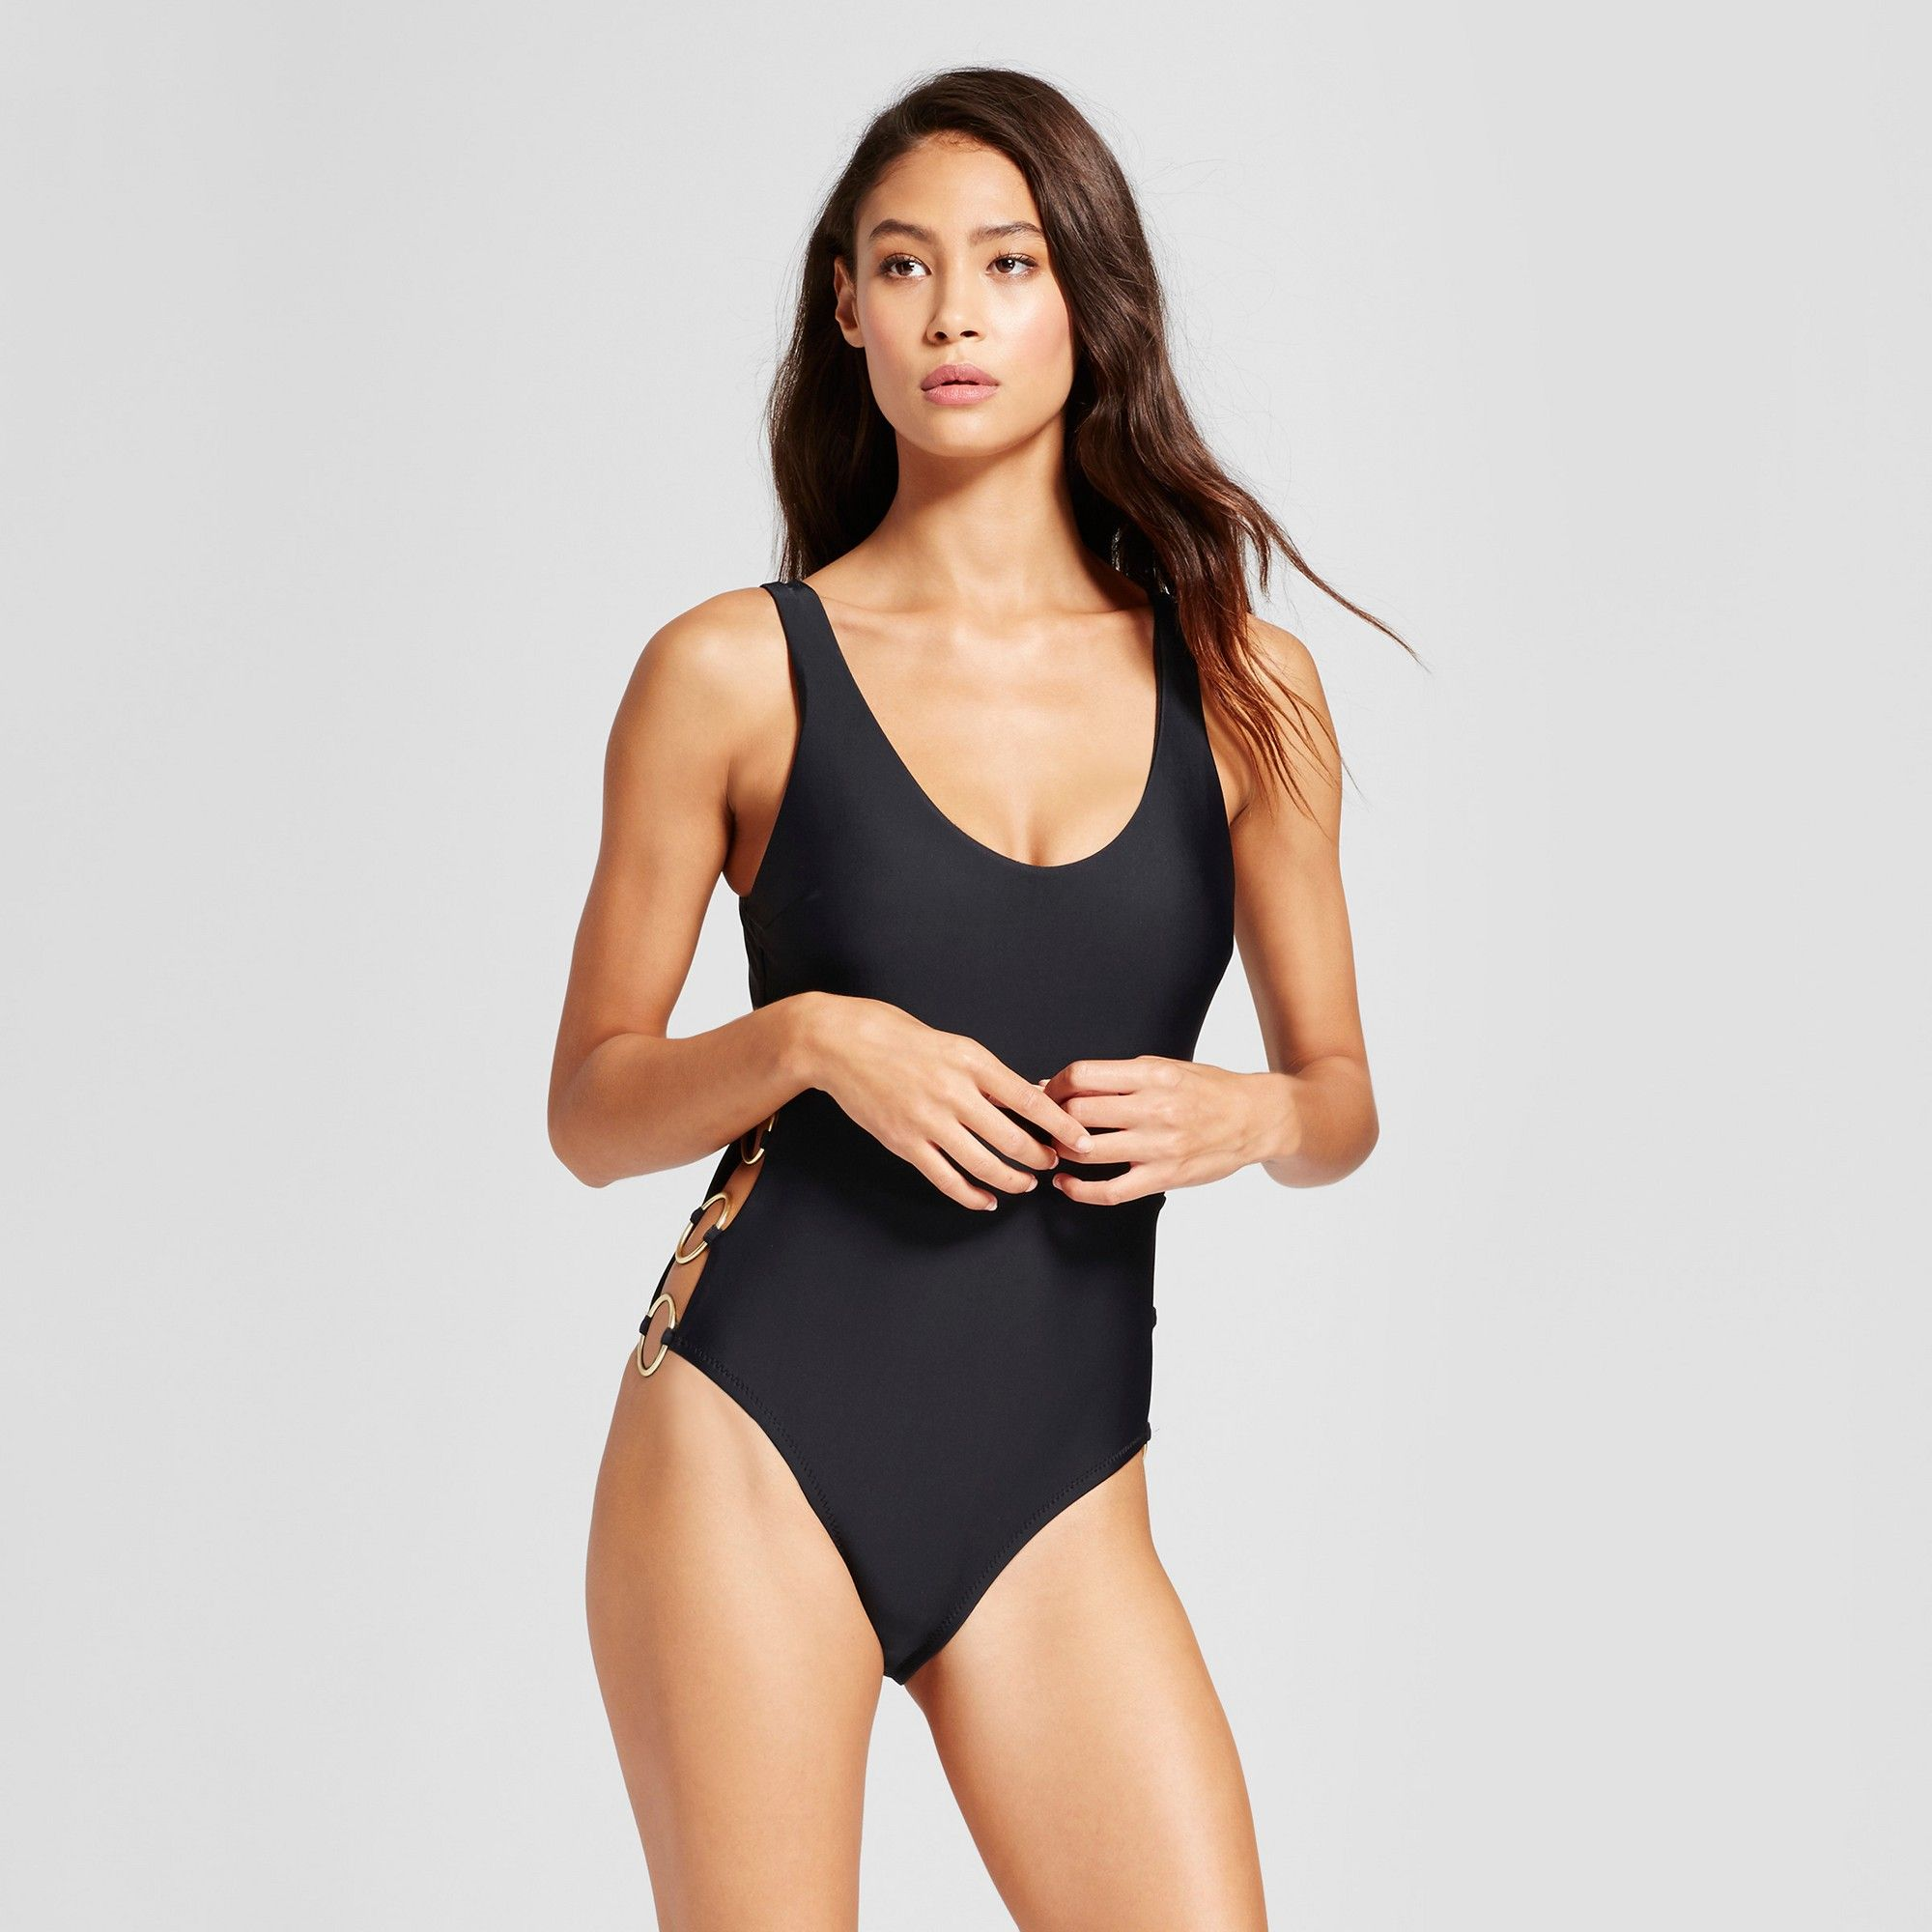 f1592cd4da8a Women's Ring Side Scoop Back One Piece - Black - XS - Mossimo ...